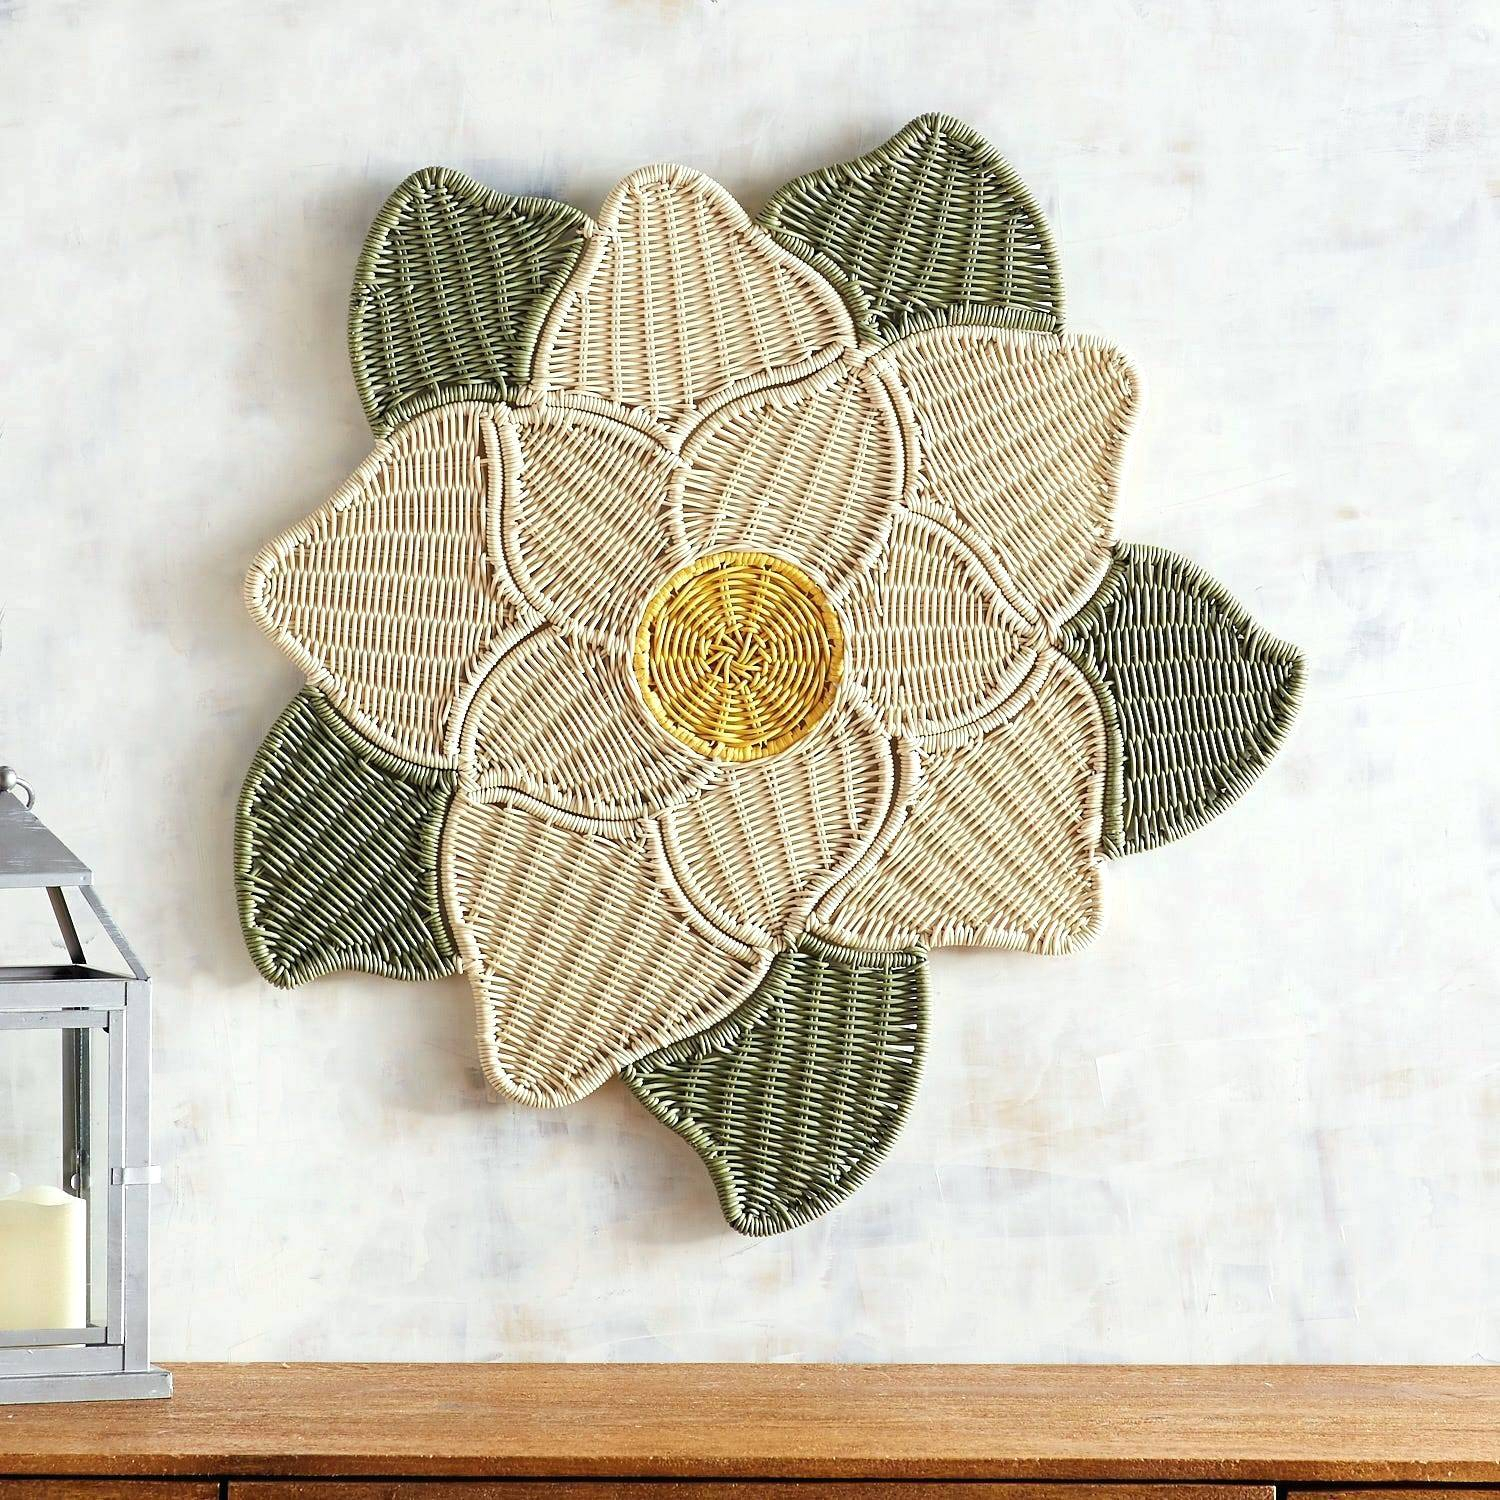 Magnolia Wall Decor – Awescreative.co with regard to 3 Piece Magnolia Brown Panel Wall Decor Sets (Image 21 of 30)